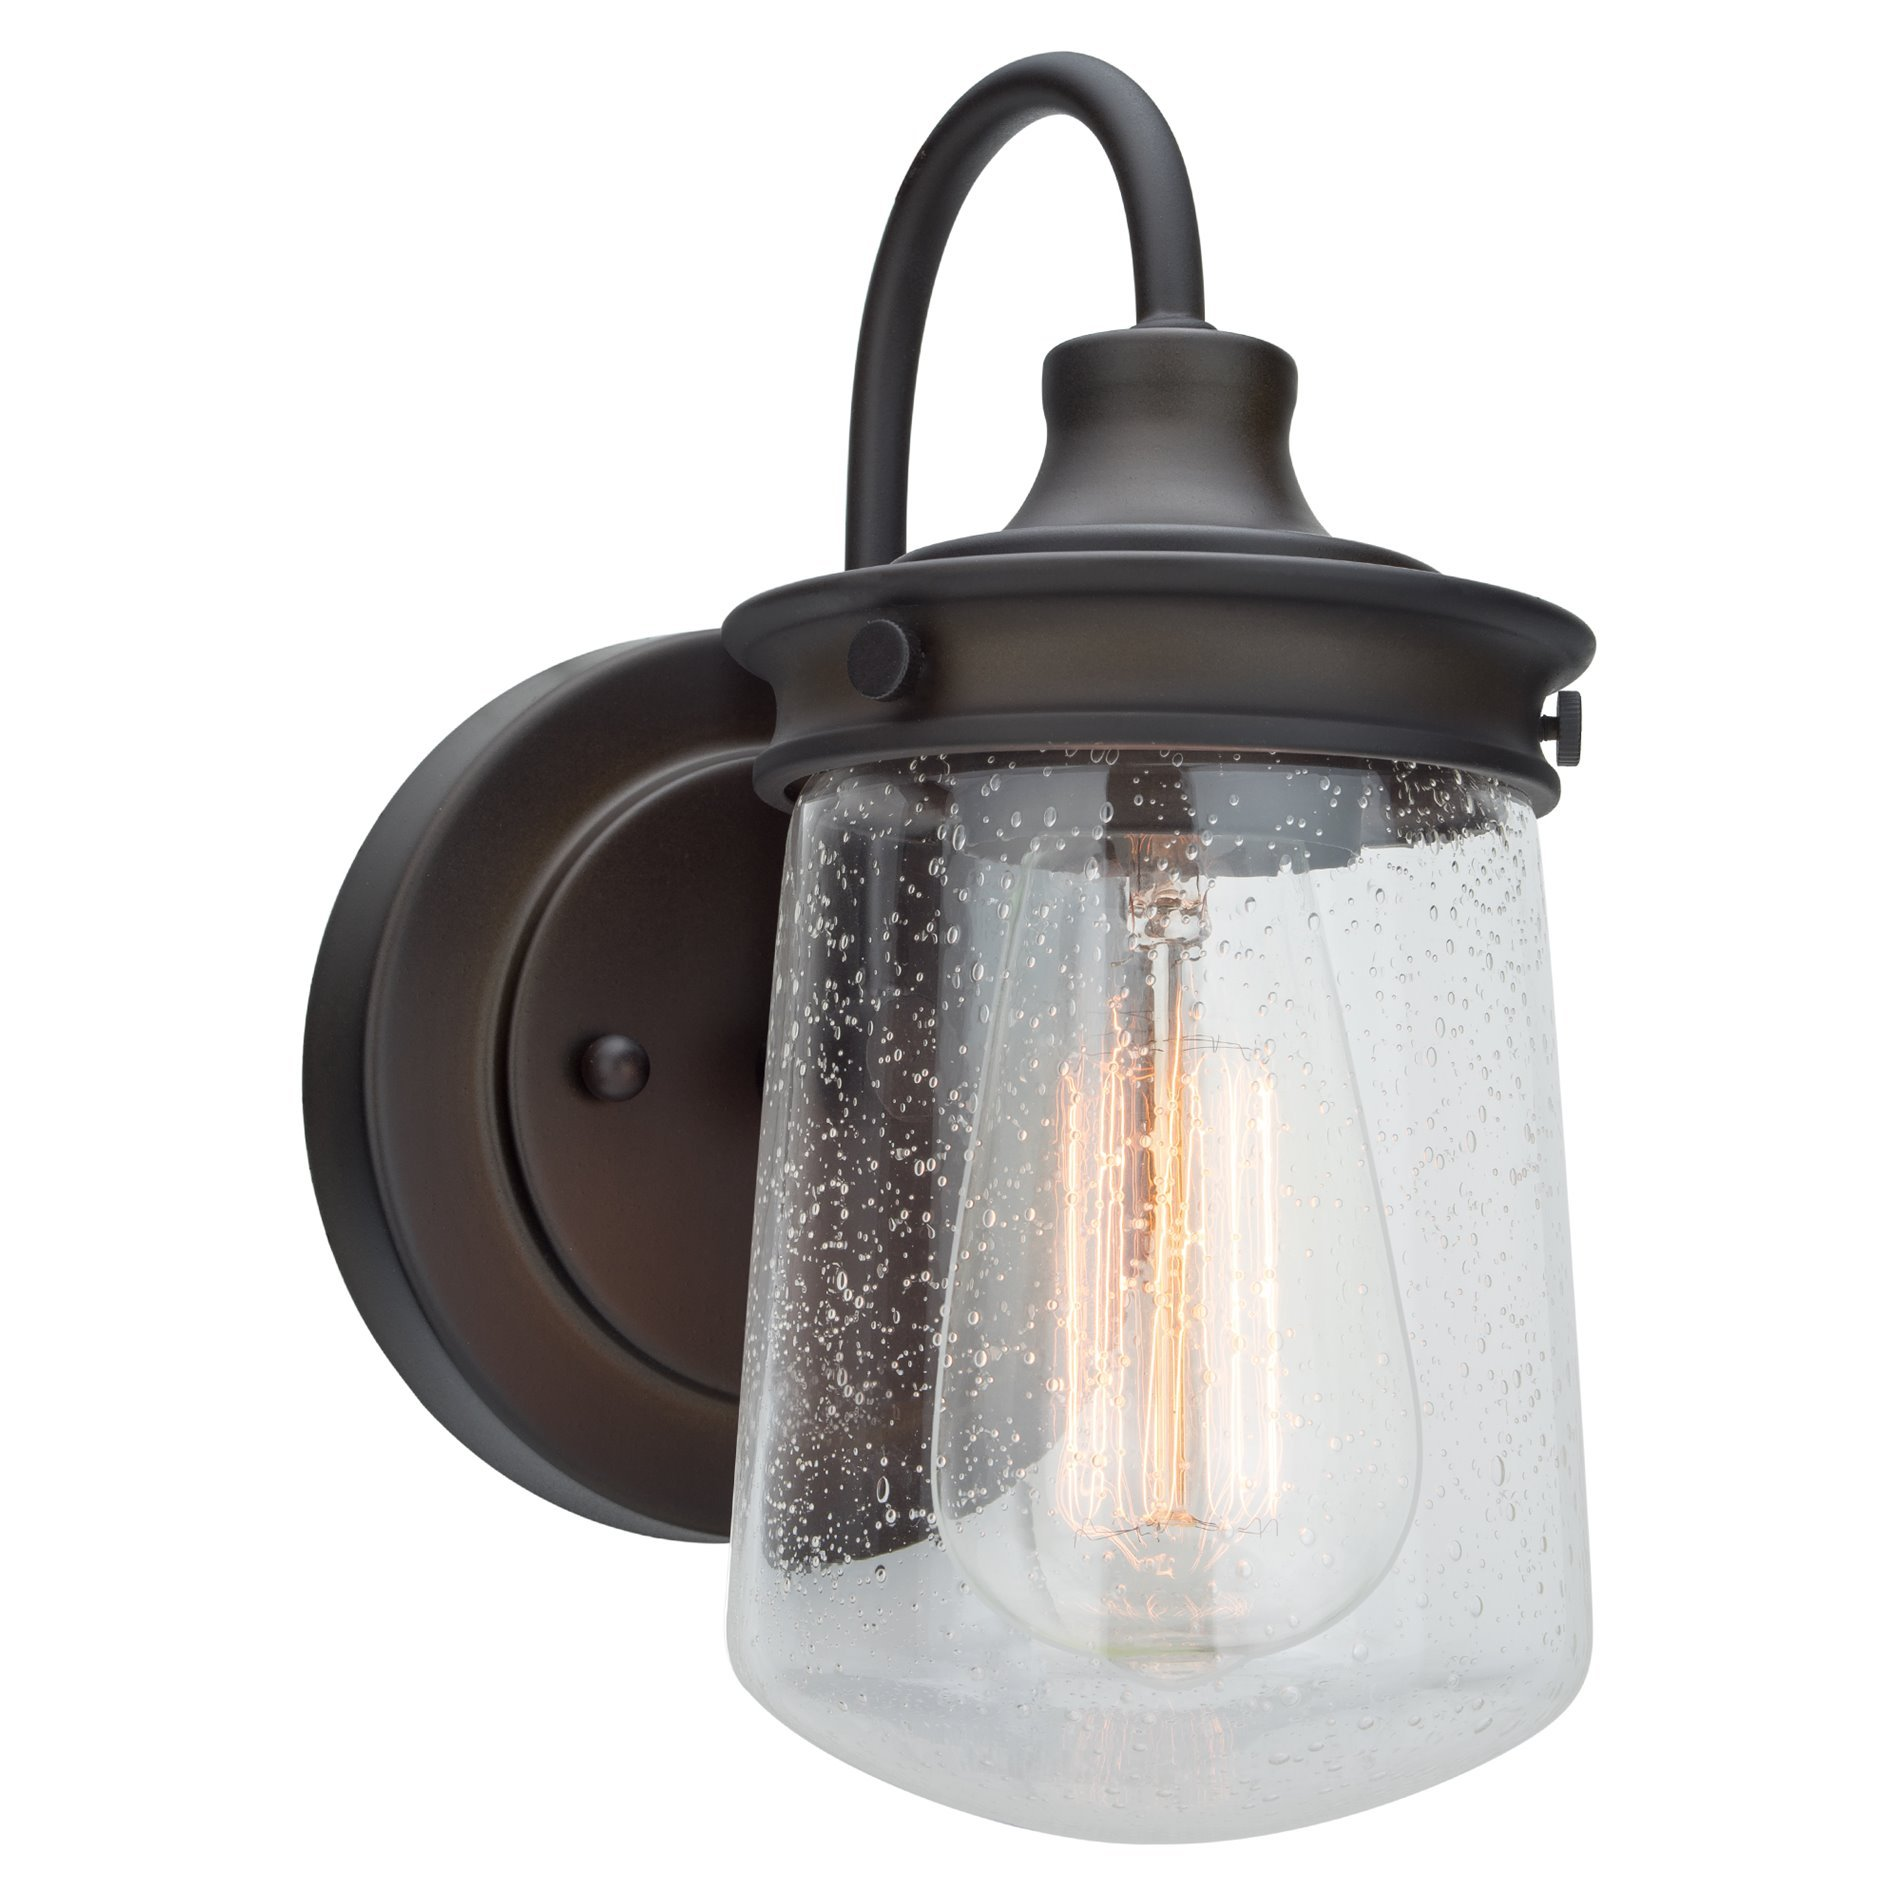 Kira Home Mason 10'' Industrial Wall Sconce, Seeded Glass Shade + Oil-Rubbed Bronze